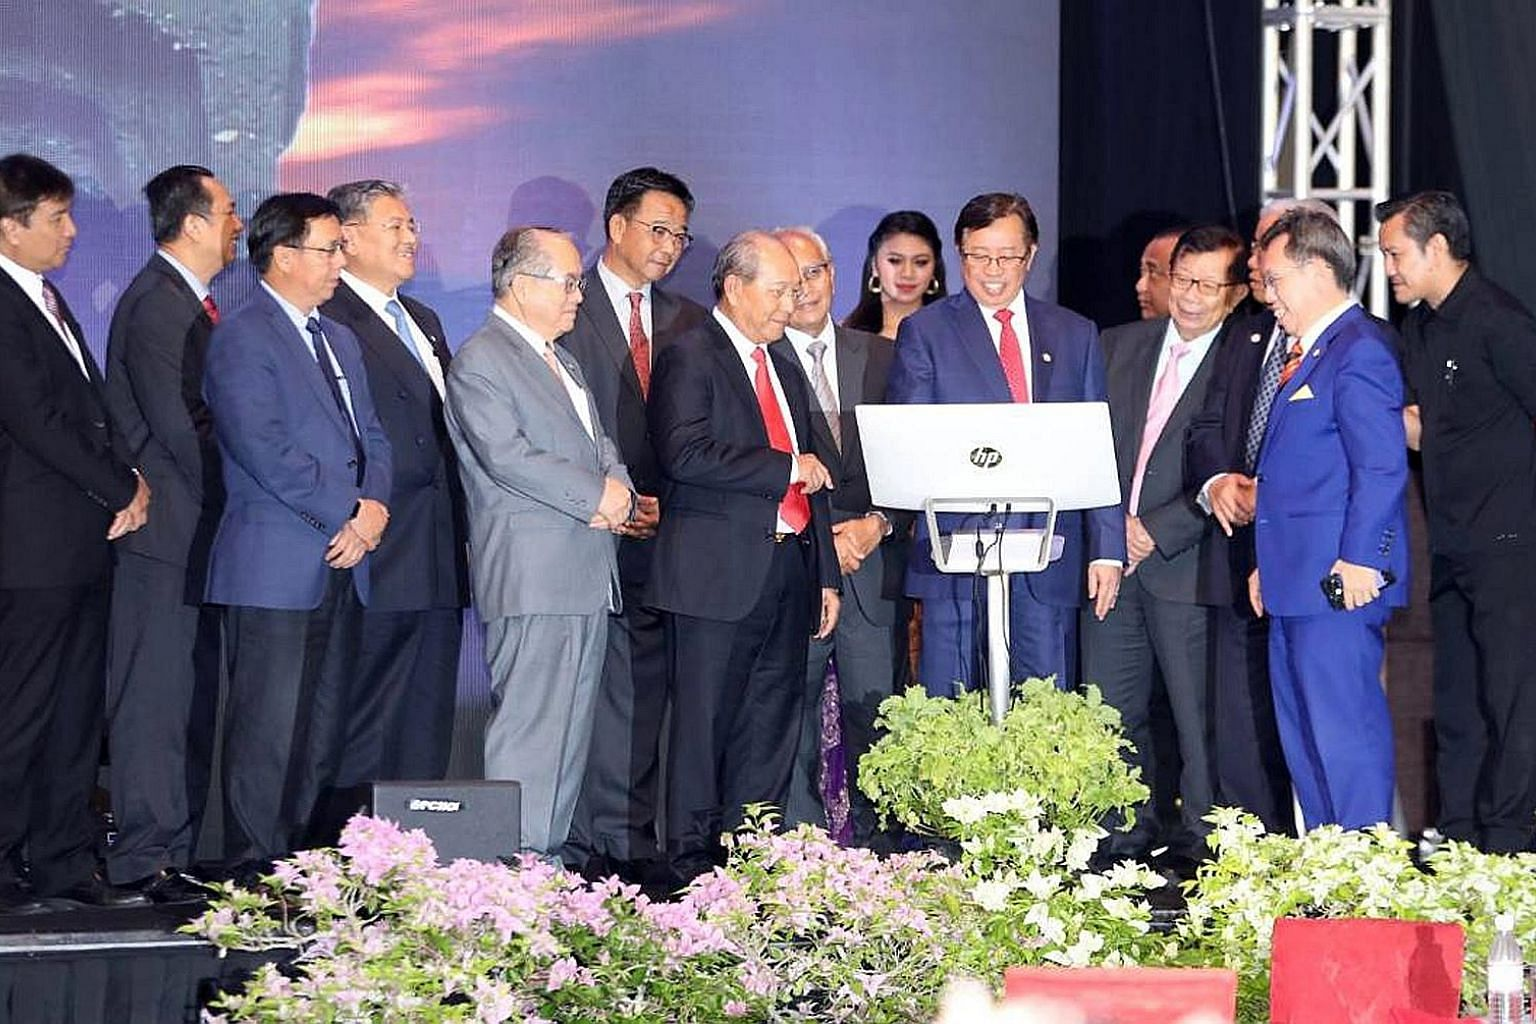 Sarawak Chief Minister Abang Johari Openg signing on a monitor to symbolically launch Petros. Also present were Deputy Chief Minister Douglas Uggah Embas (far left) and Petros chairman Hamid Bugo (third from left).